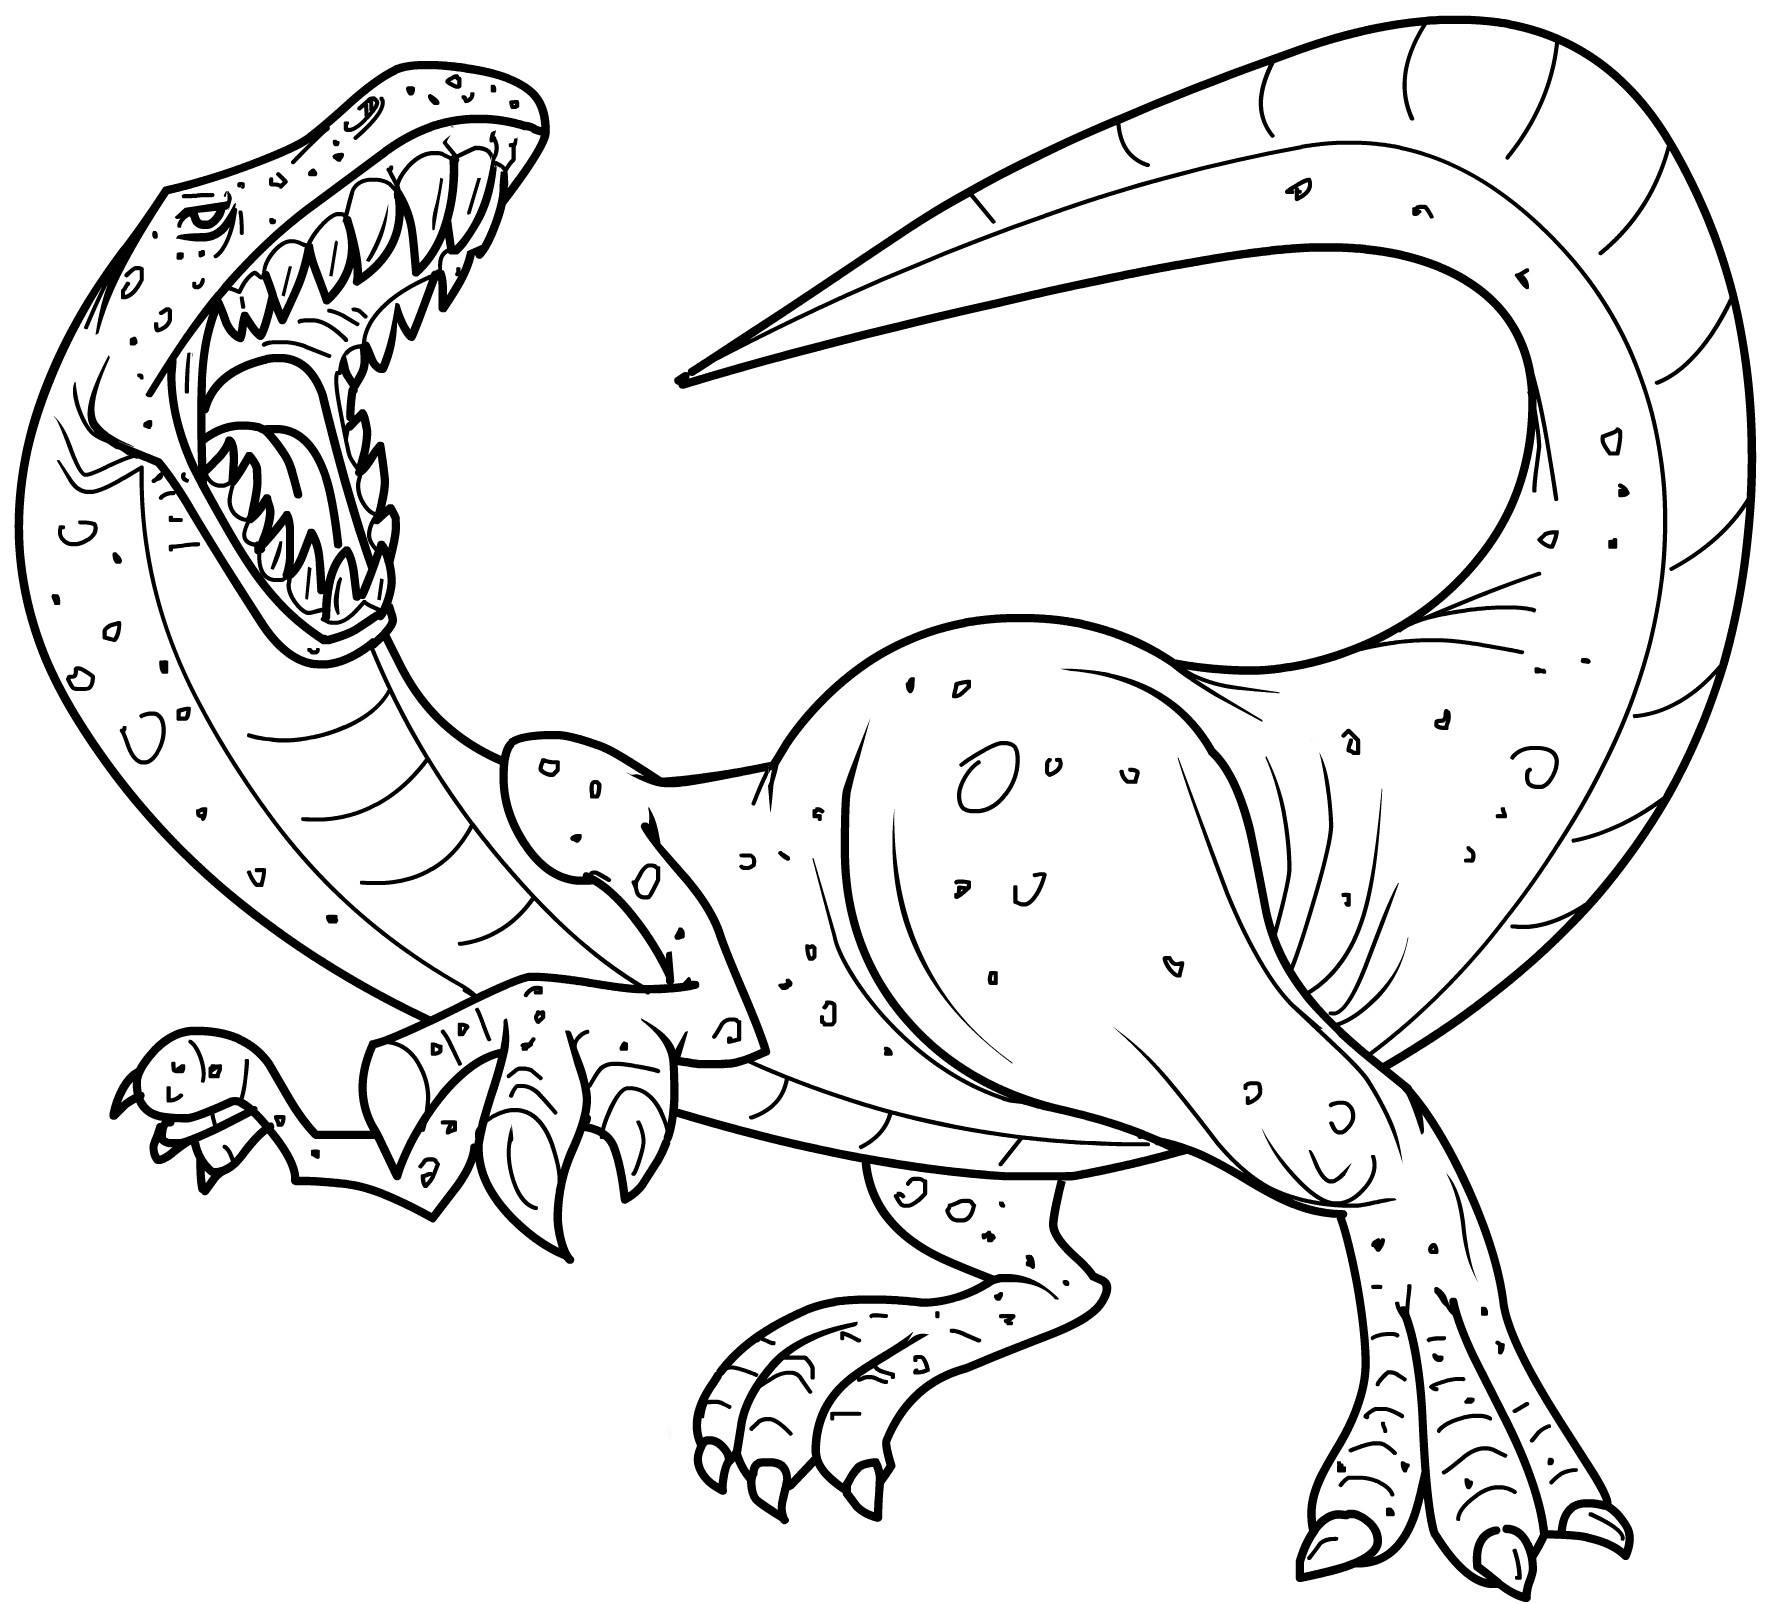 Dinosaur coloring pages to download and print for free